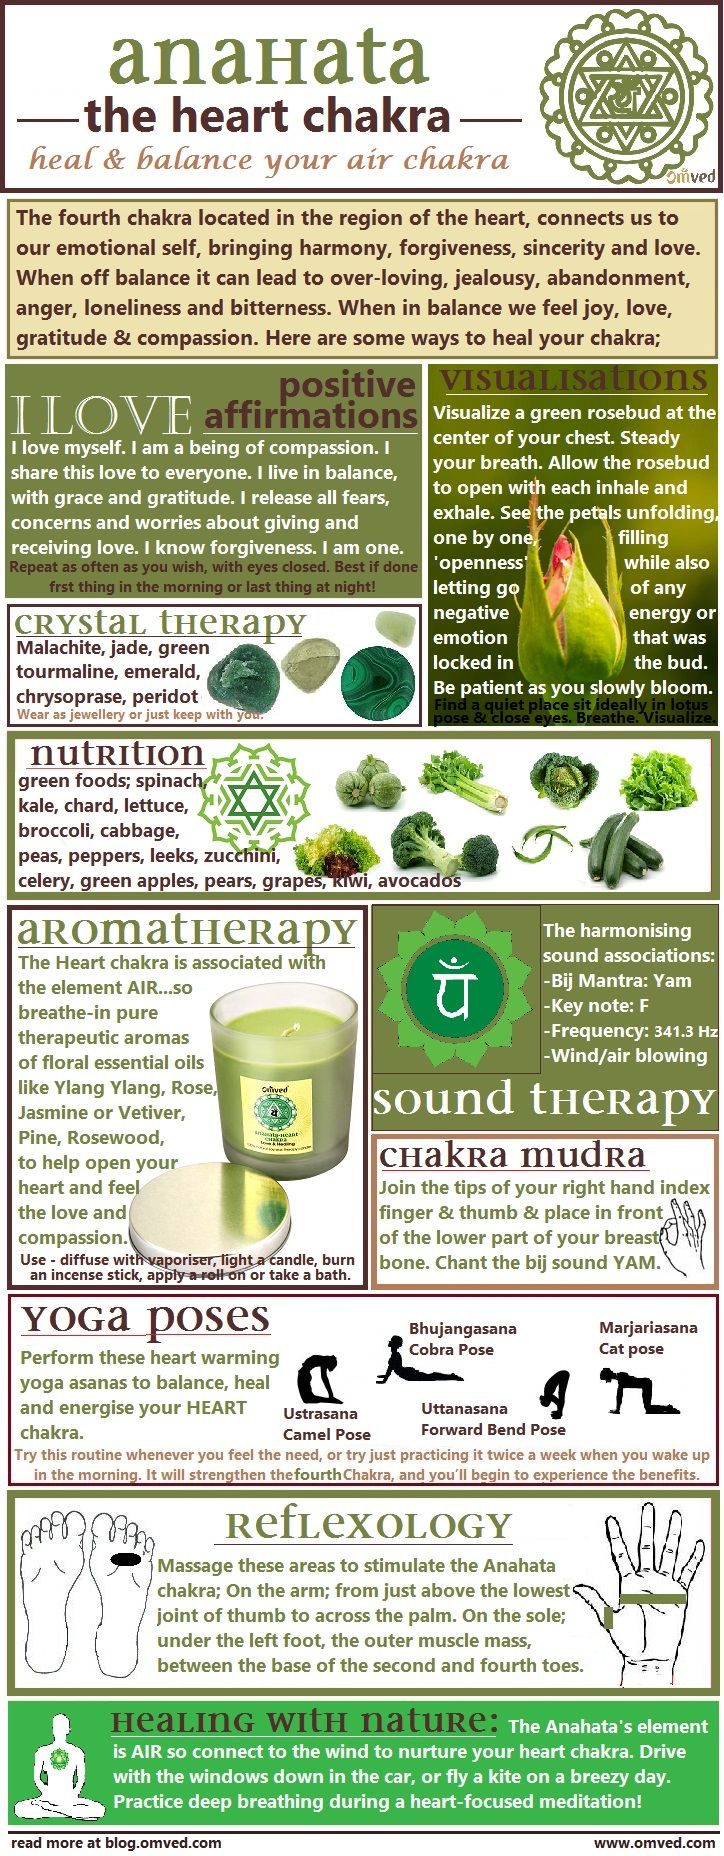 10 ways to Heal & Balance your chakras - There are many ways one can begin to balance their HEART CHAKRA. Here are several useful methods, including aromatherapy, visualisations, affirmations, mudra, yoga poses, nutrition, reflexology color, nature and sound therapy!